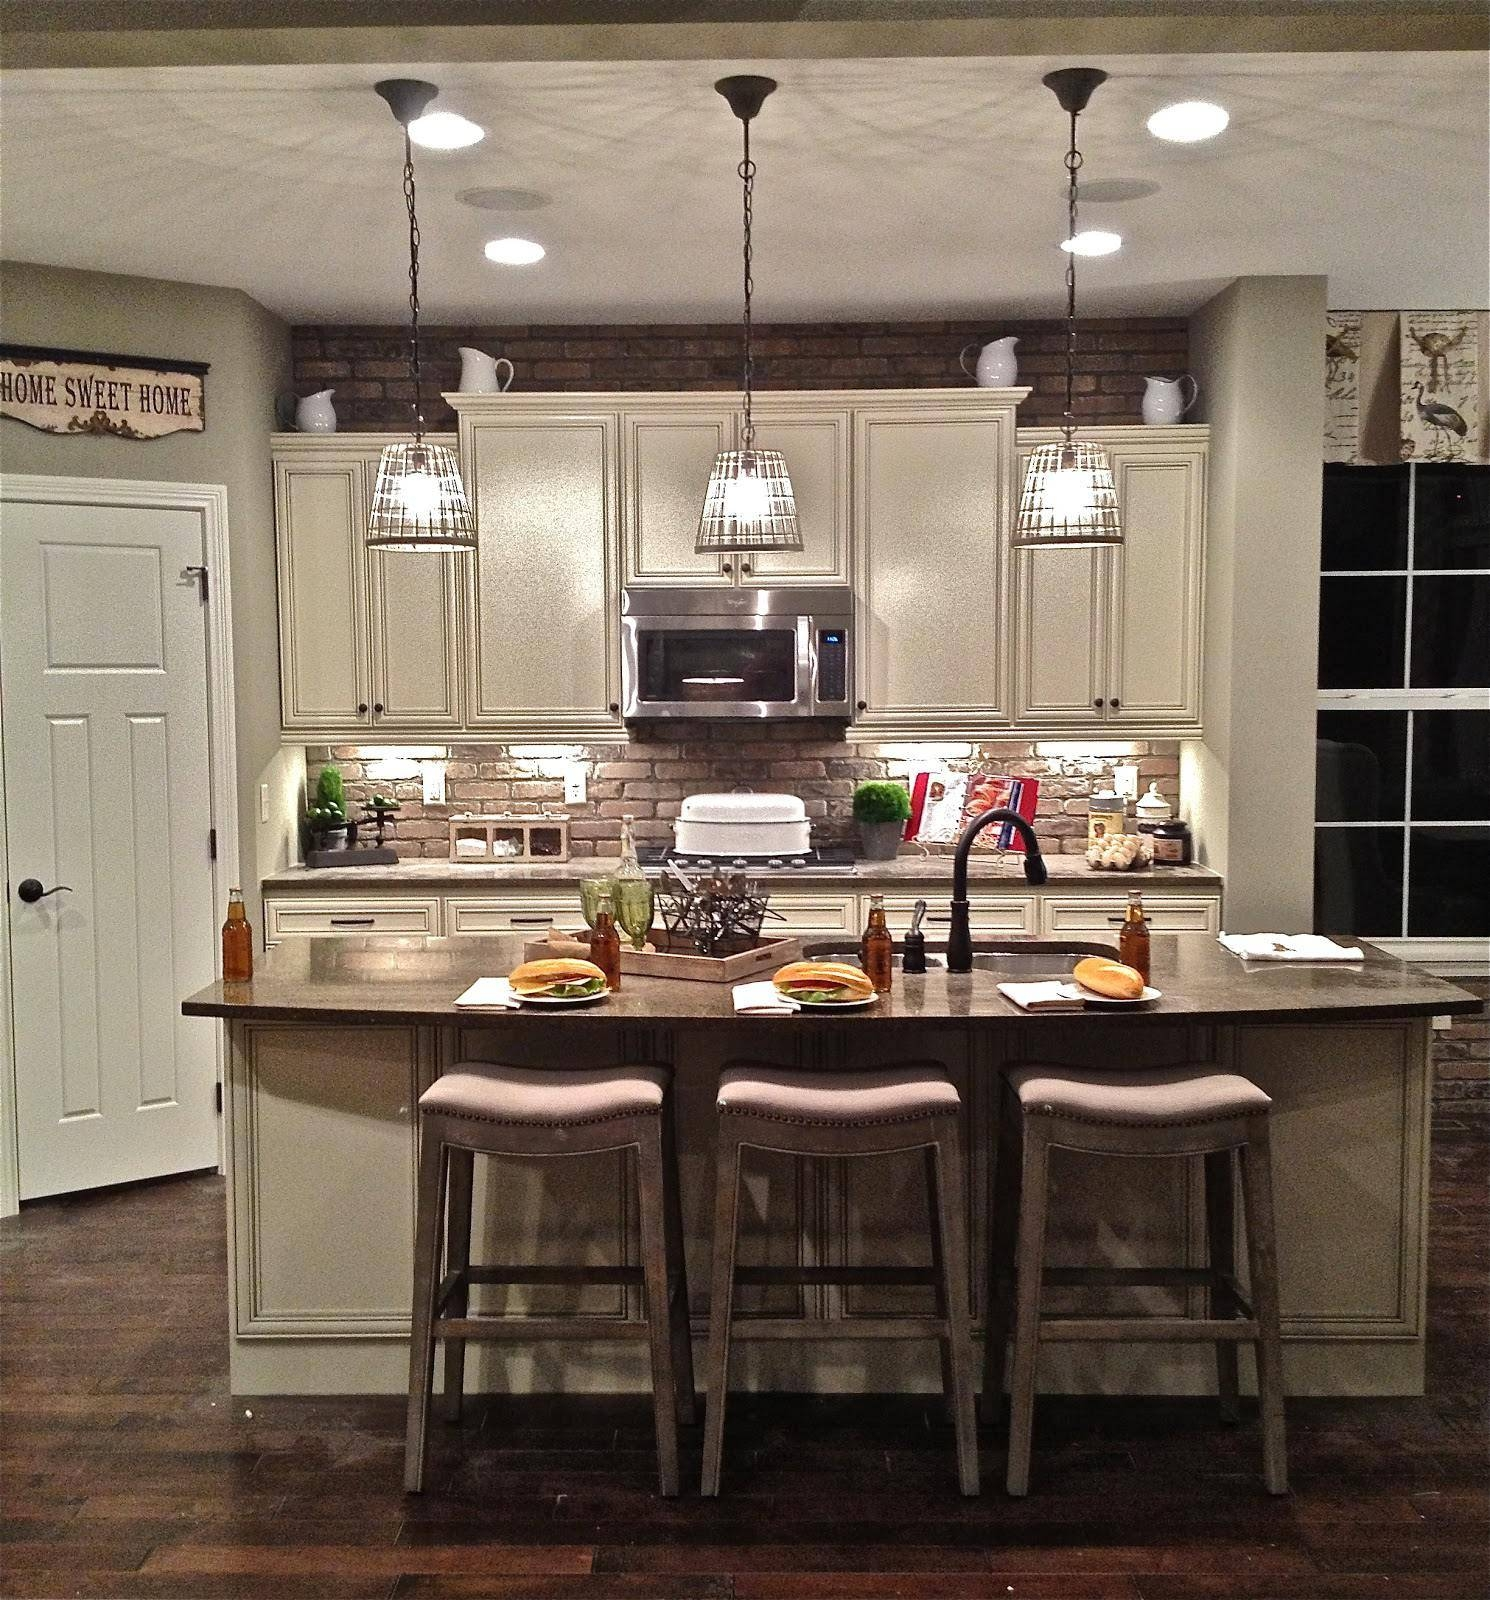 French Farmhouse Chandelier Rustic Iron Hanging Light Fixtures Inside Rustic Pendant Lighting For Kitchen (View 3 of 15)